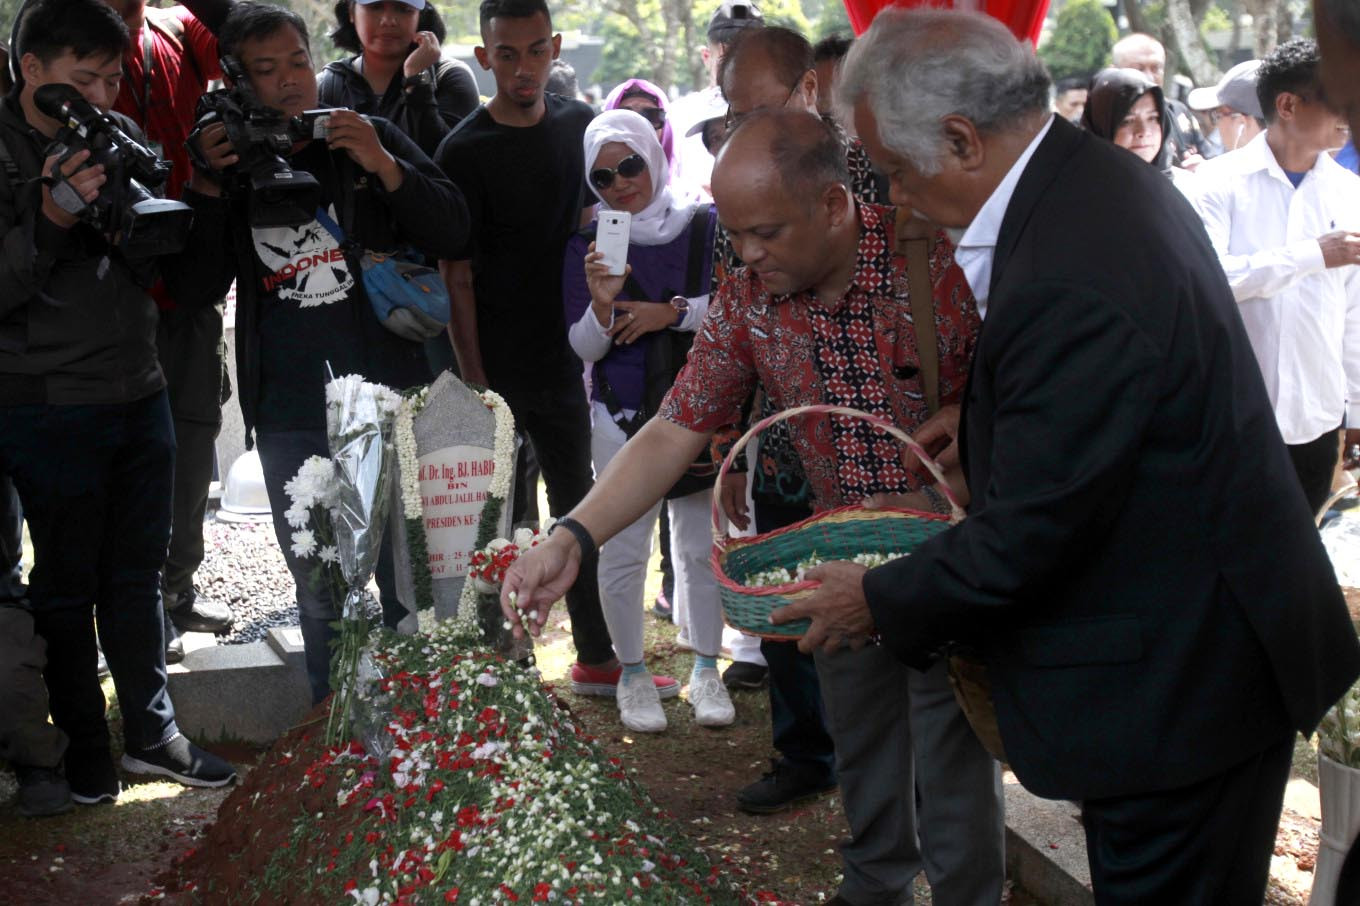 Timor Leste's first president Xanana Gusmao visits the grave of Indonesia's third president BJ Habibie at the Kalibata Heroes Cemetery in South Jakarta on Sunday, September 15, 2019. JP/Narabeto Korohama